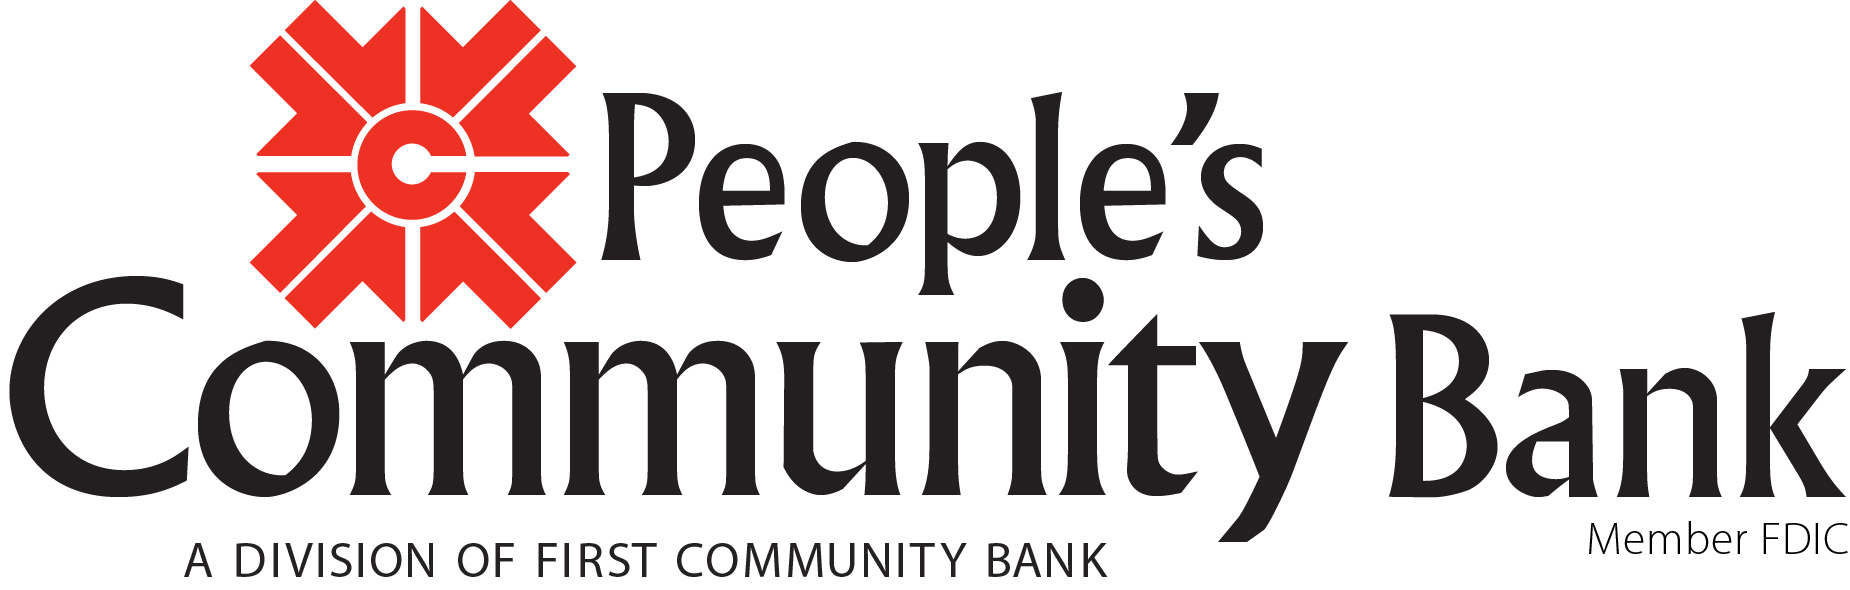 People Community Bank